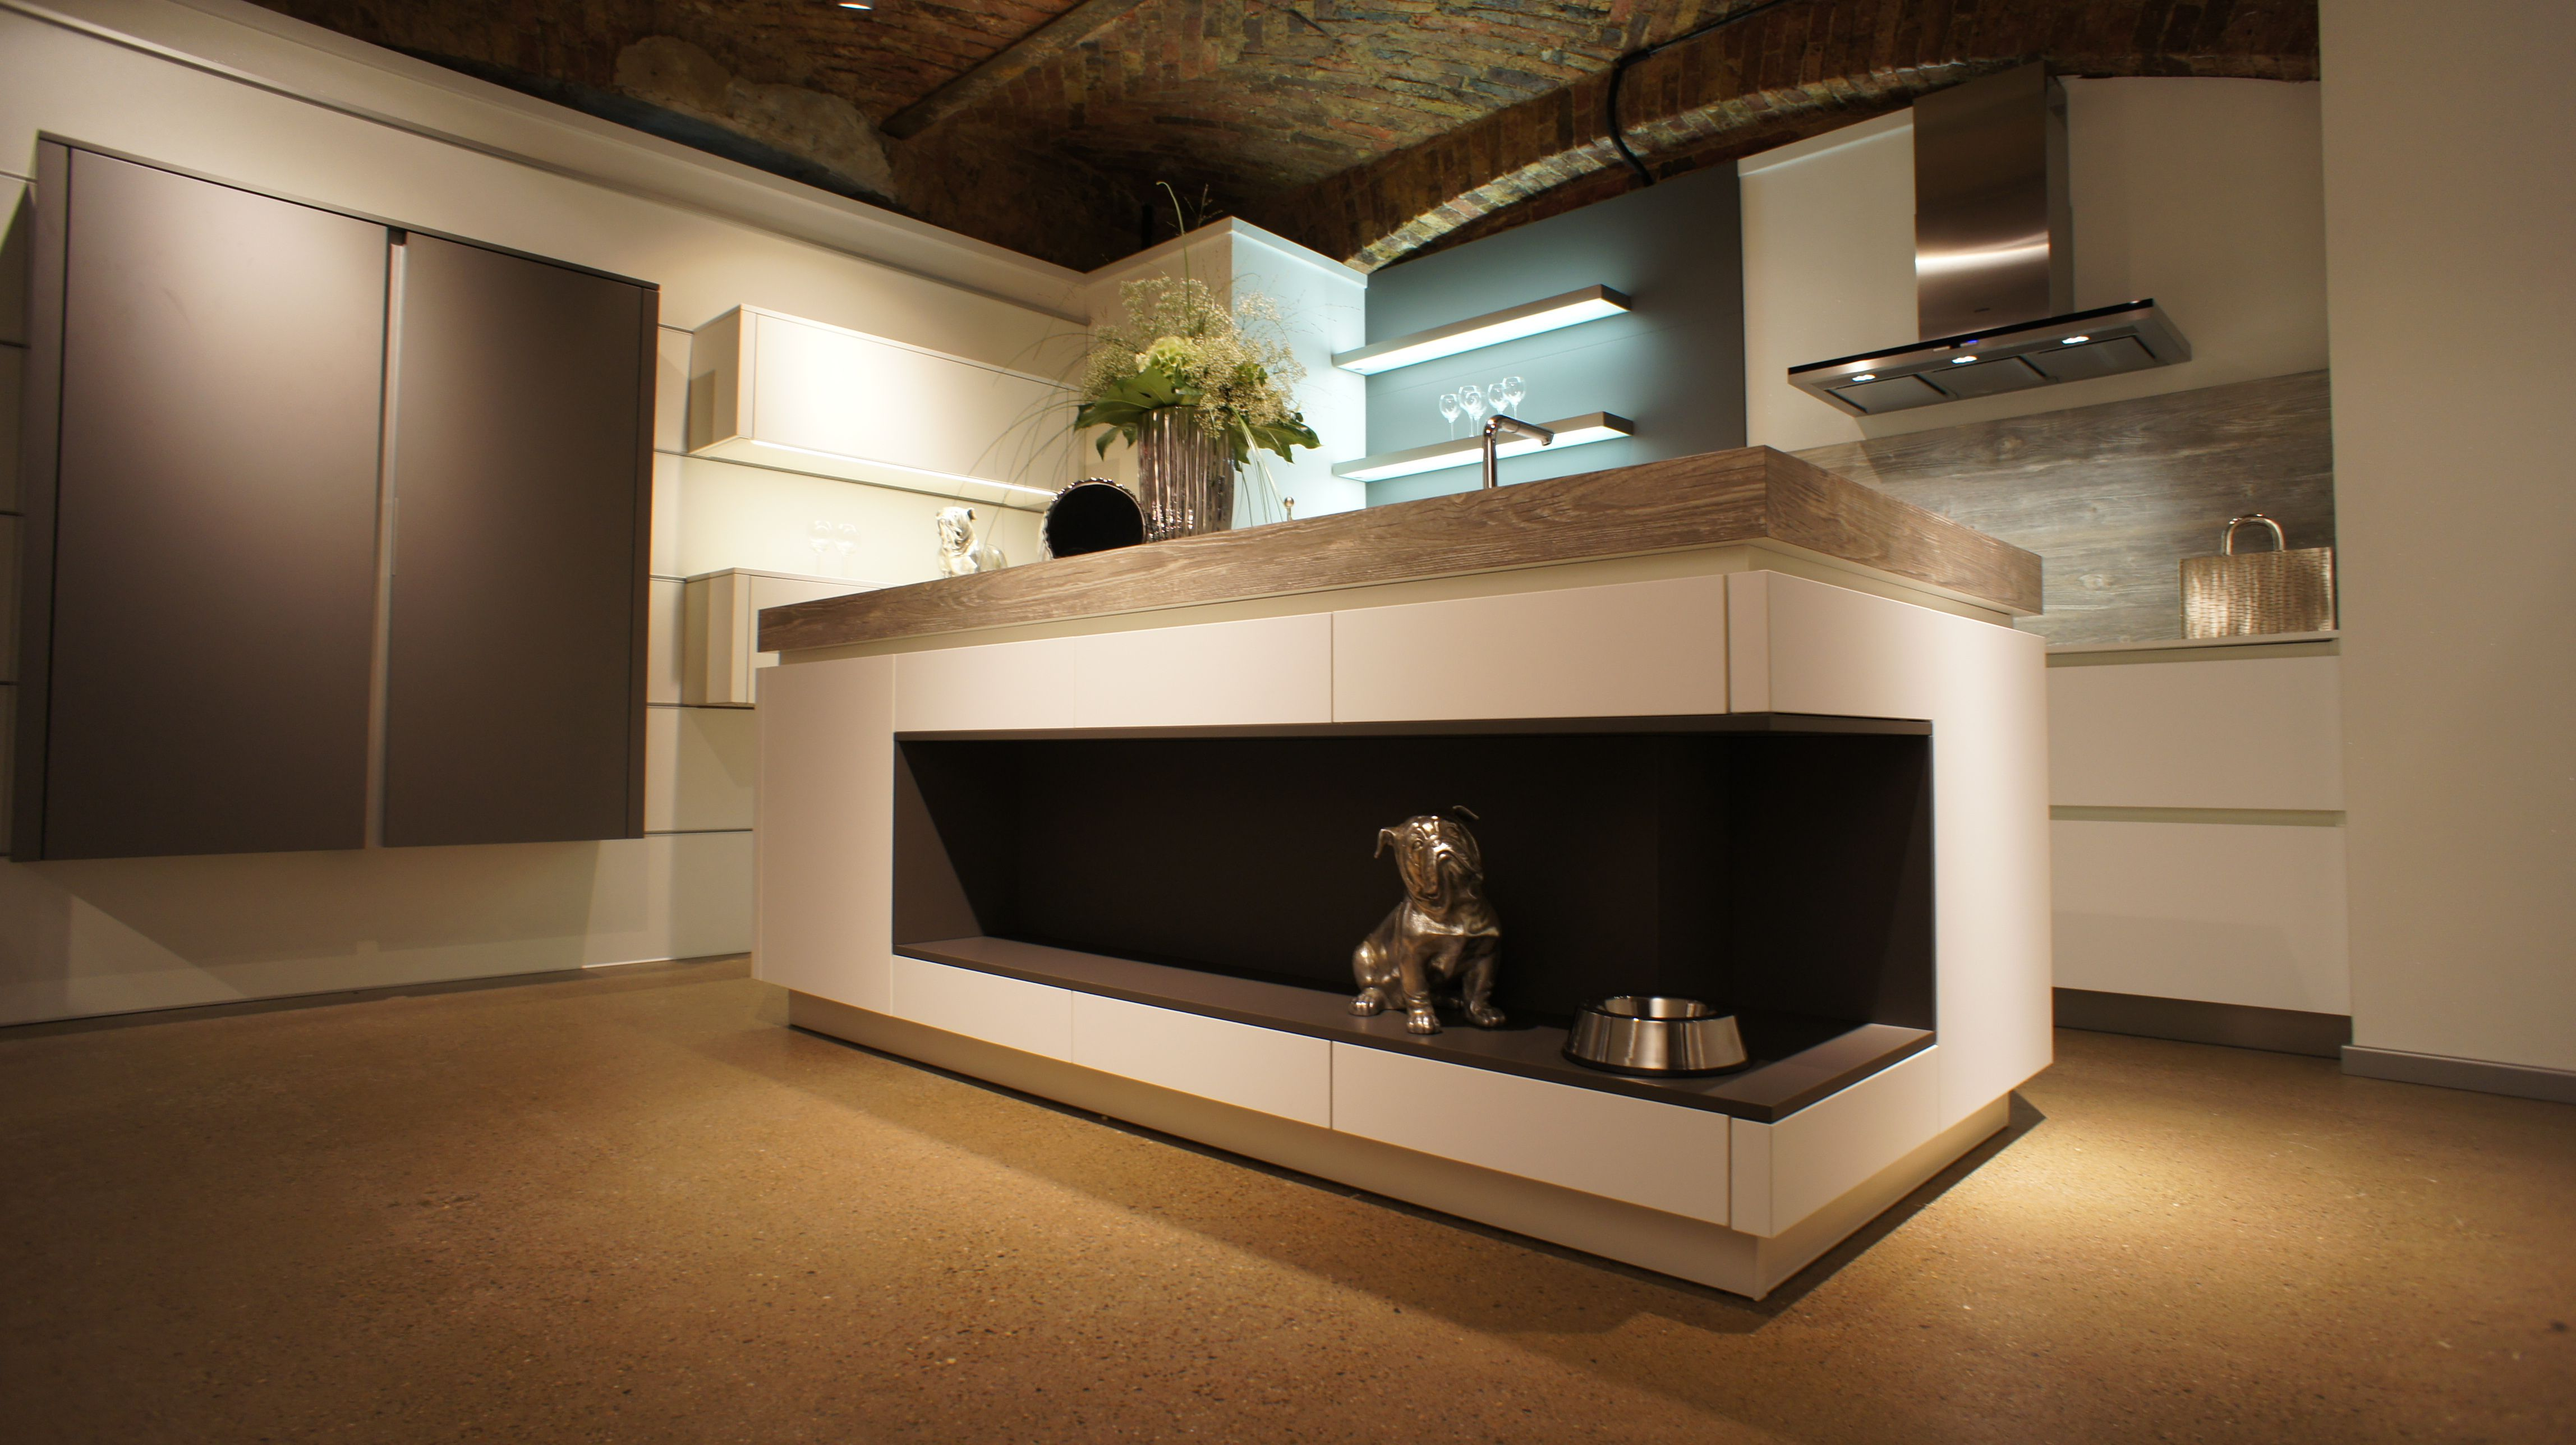 Bauformat Modern Kitchen With Cool Island.kitchen For Dog, Lighted Shelves,  Geometrical Island